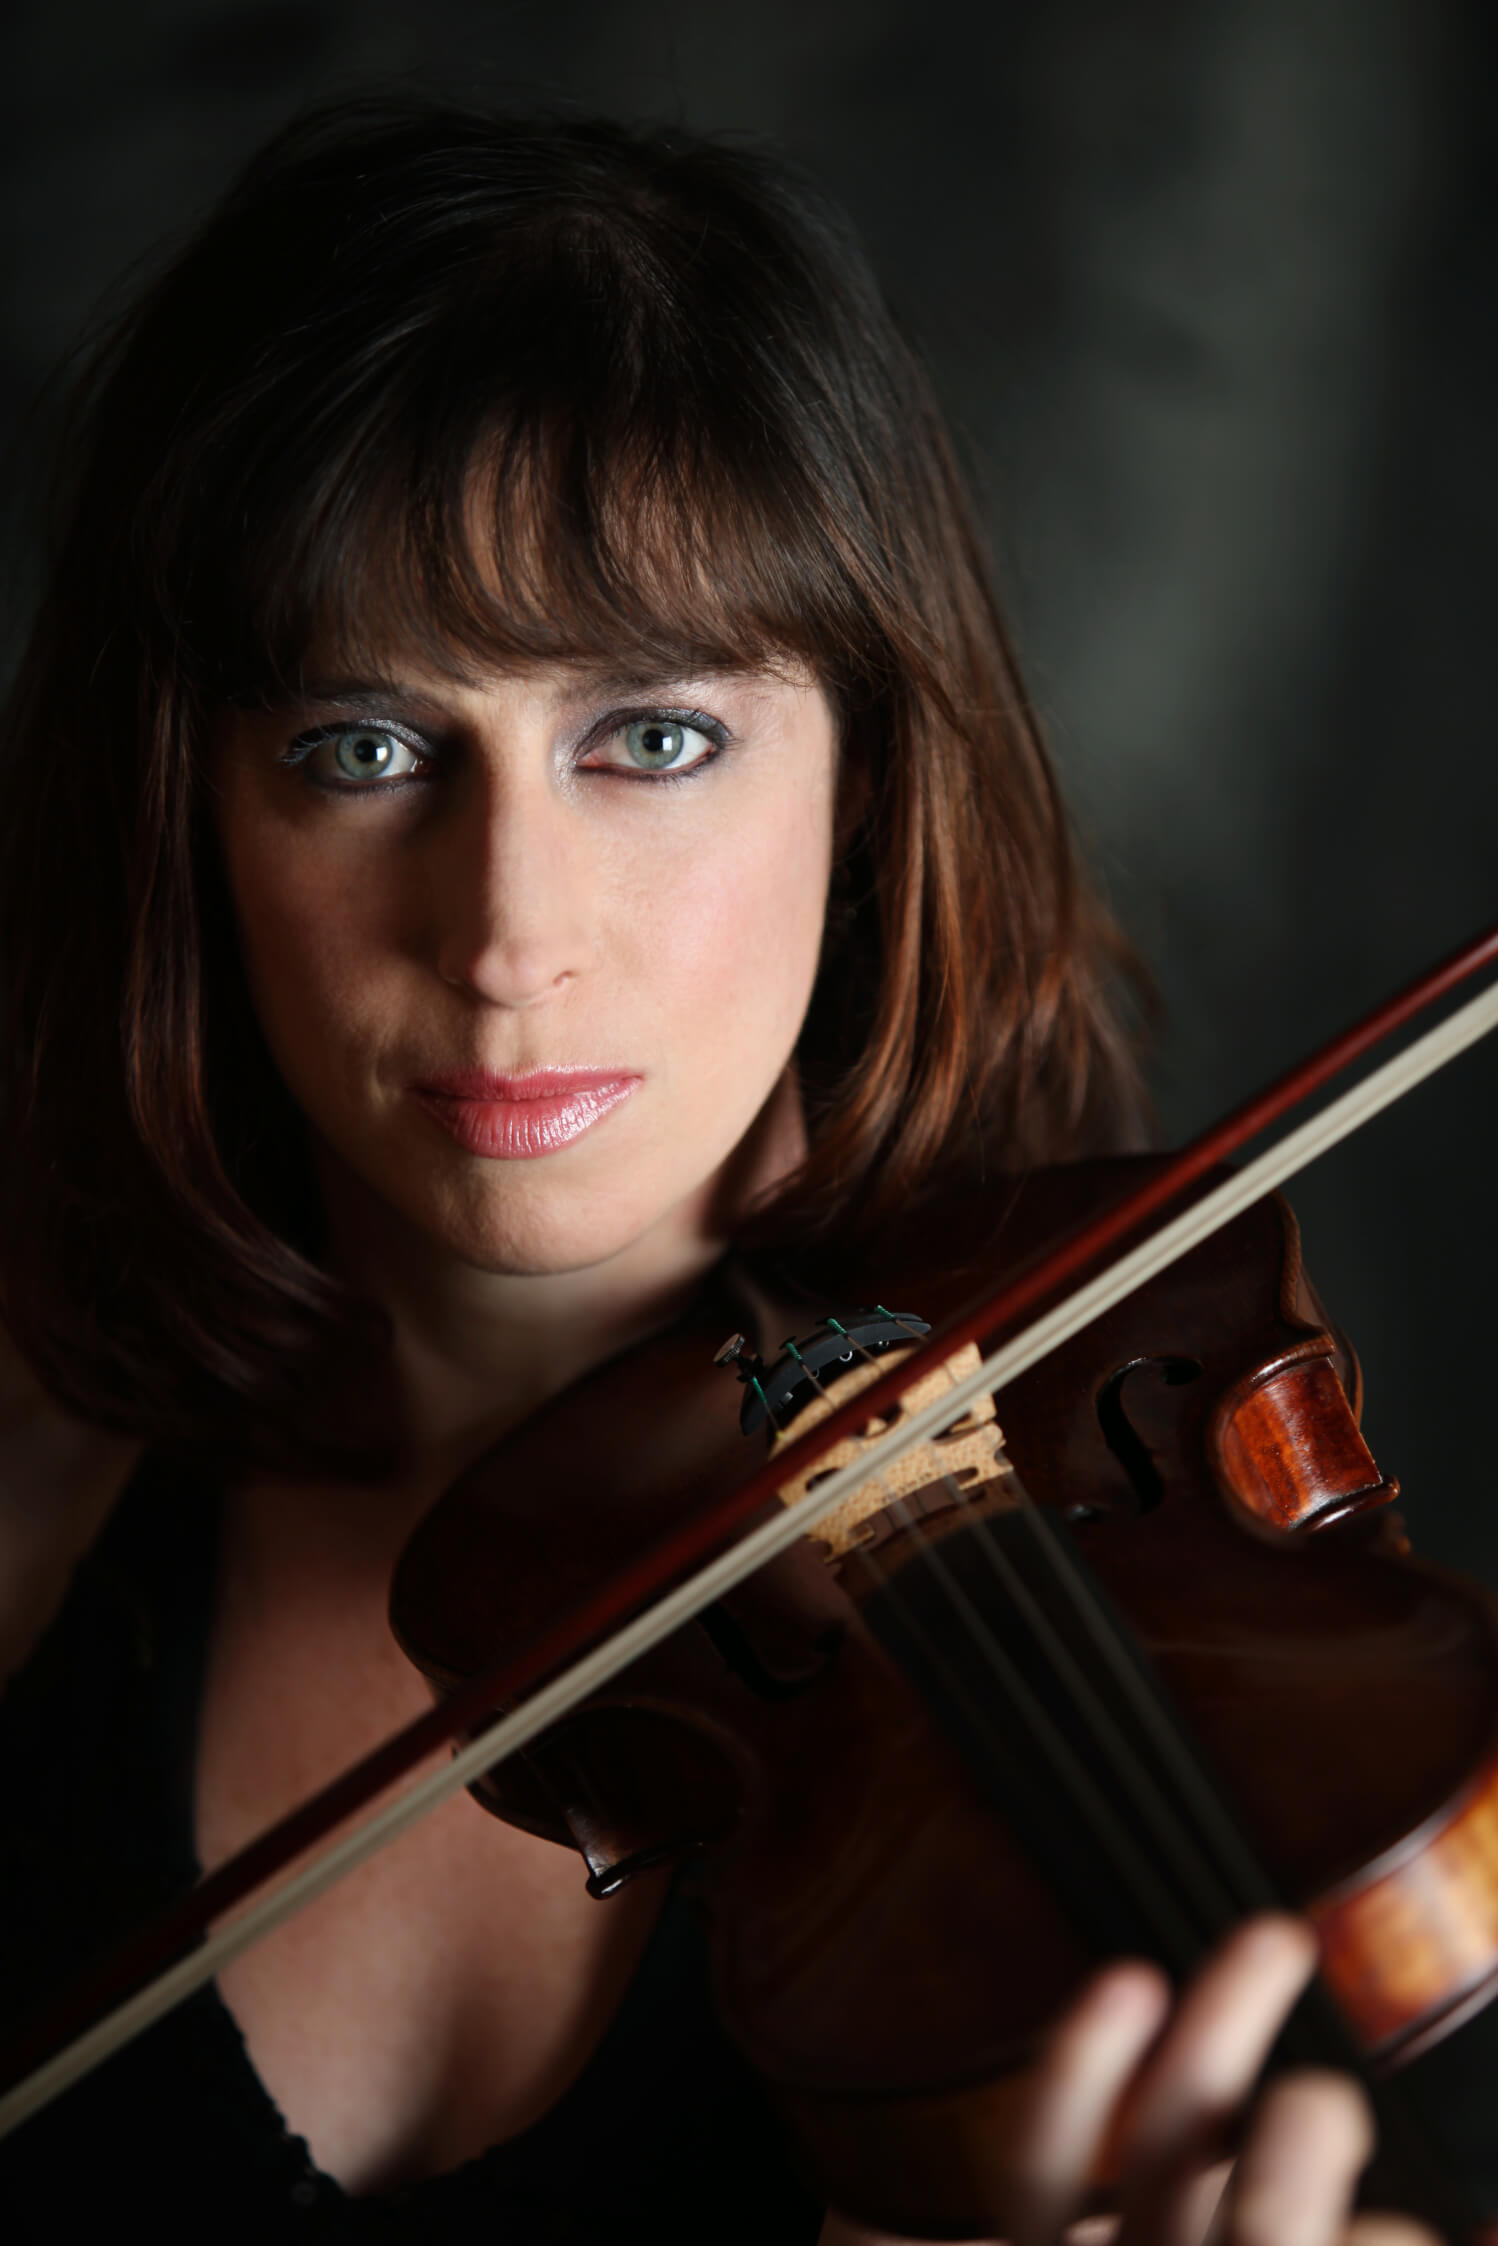 Madeleine Easton holding her violin and looking directly at the camera.